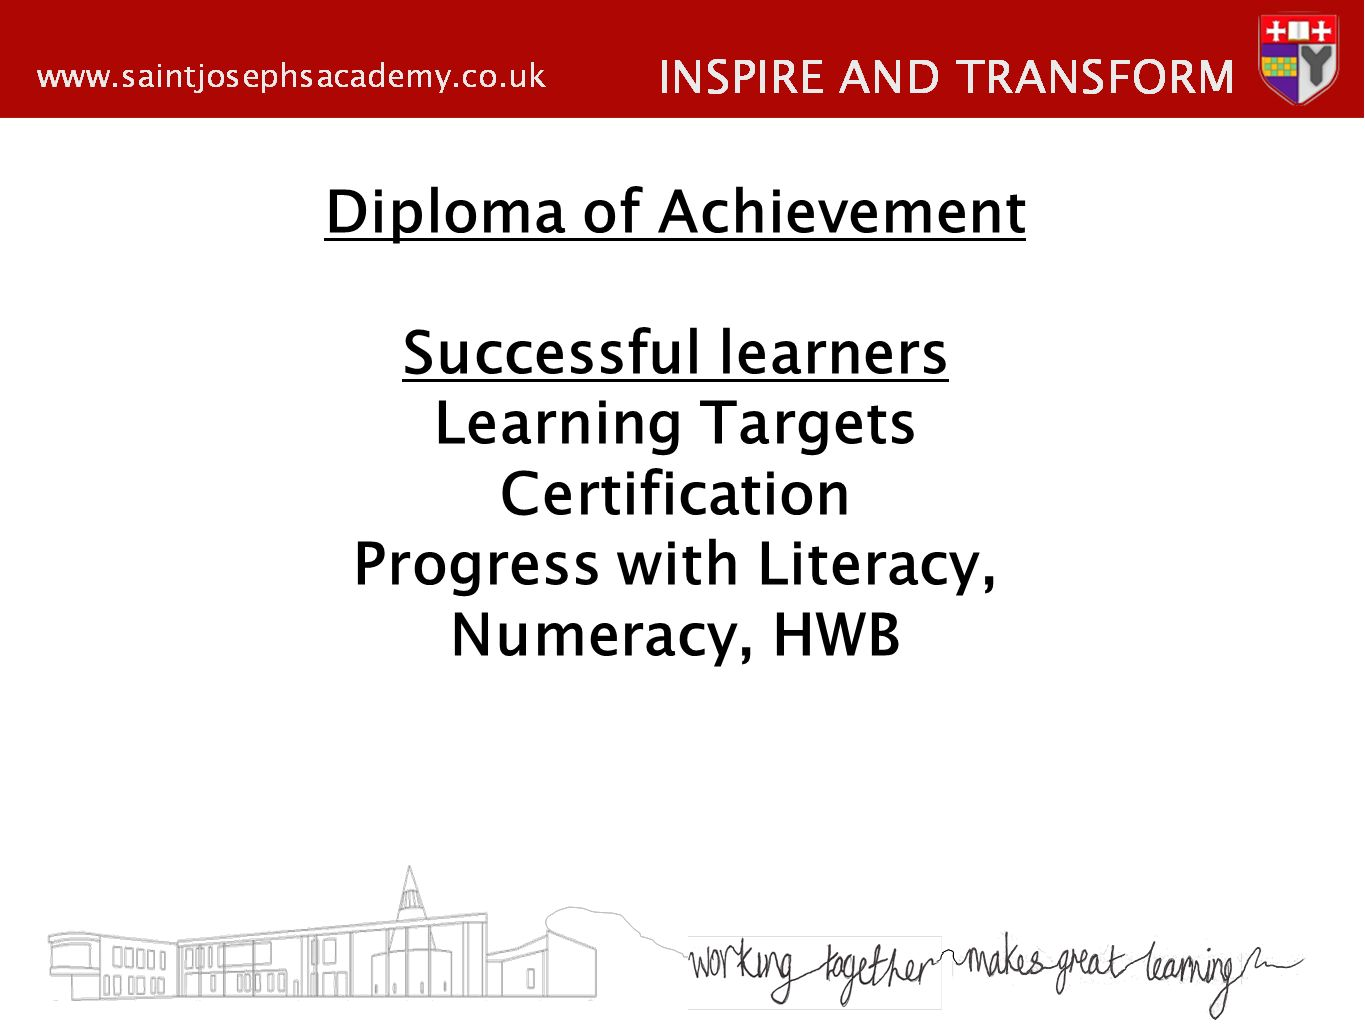 Diploma of Achievement Successful learners Learning Targets Certification Progress with Literacy, Numeracy, HWB